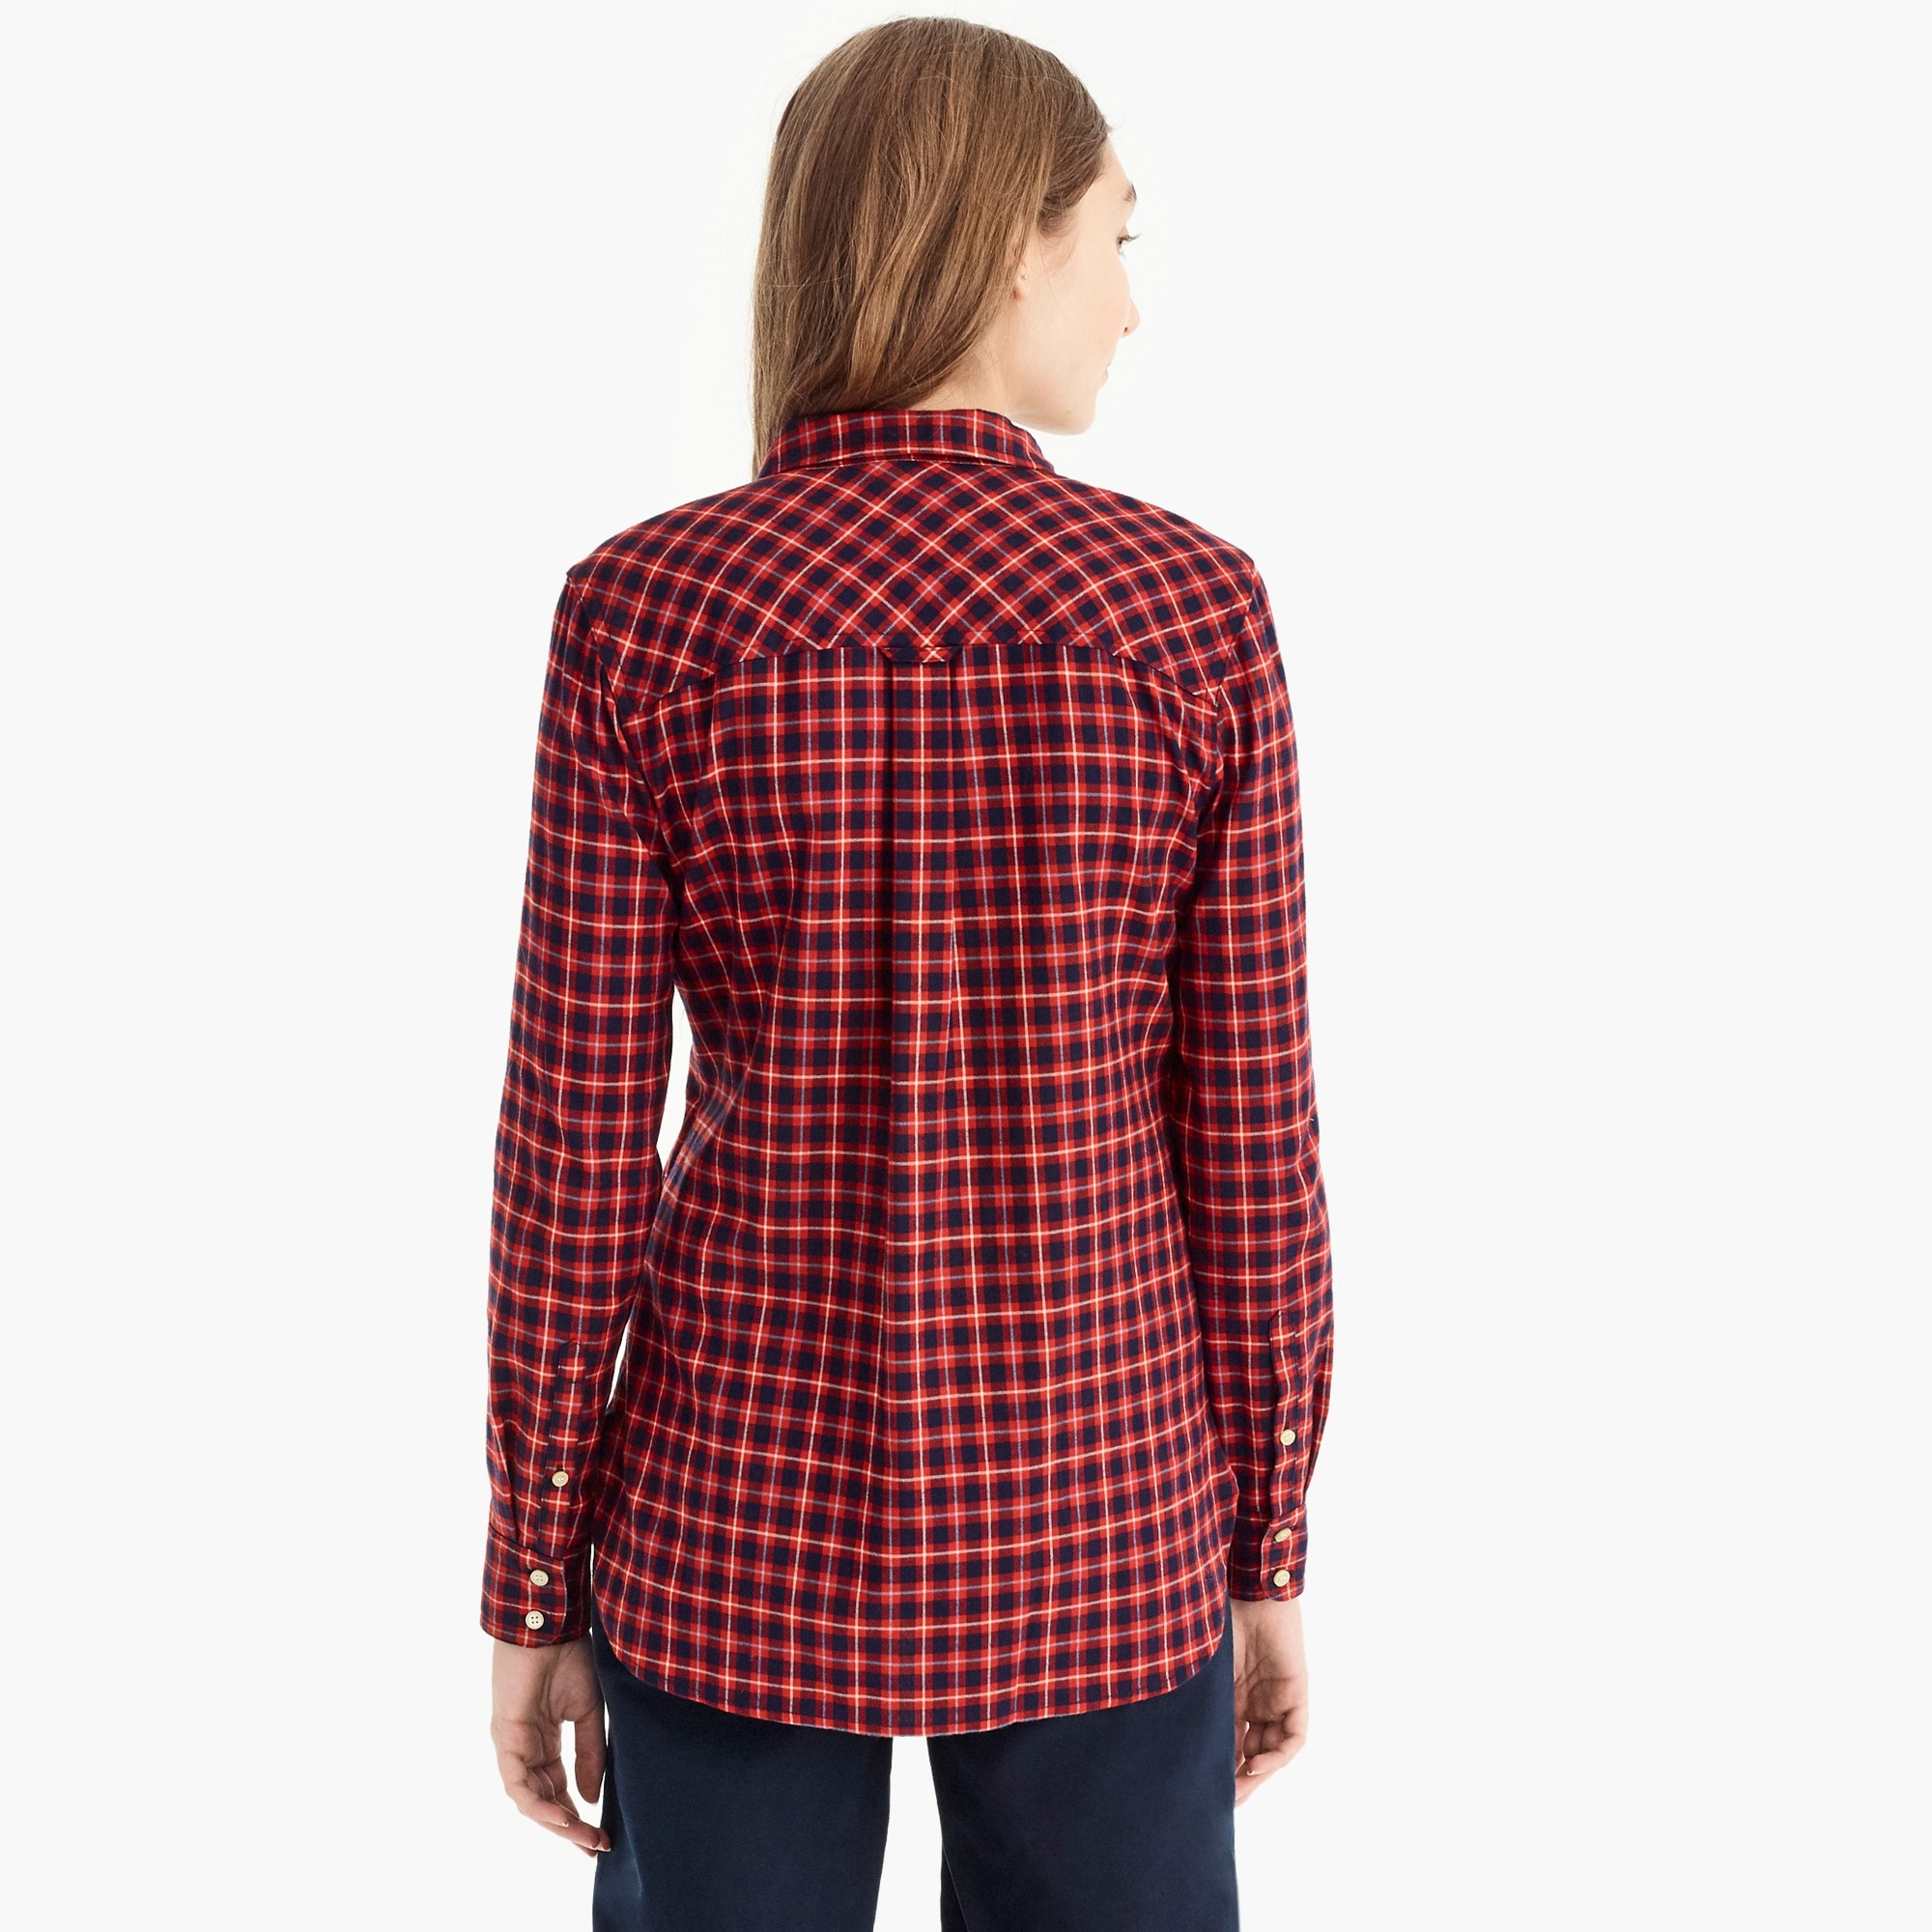 Image 5 for Classic-fit shirt in brushed twill flannel